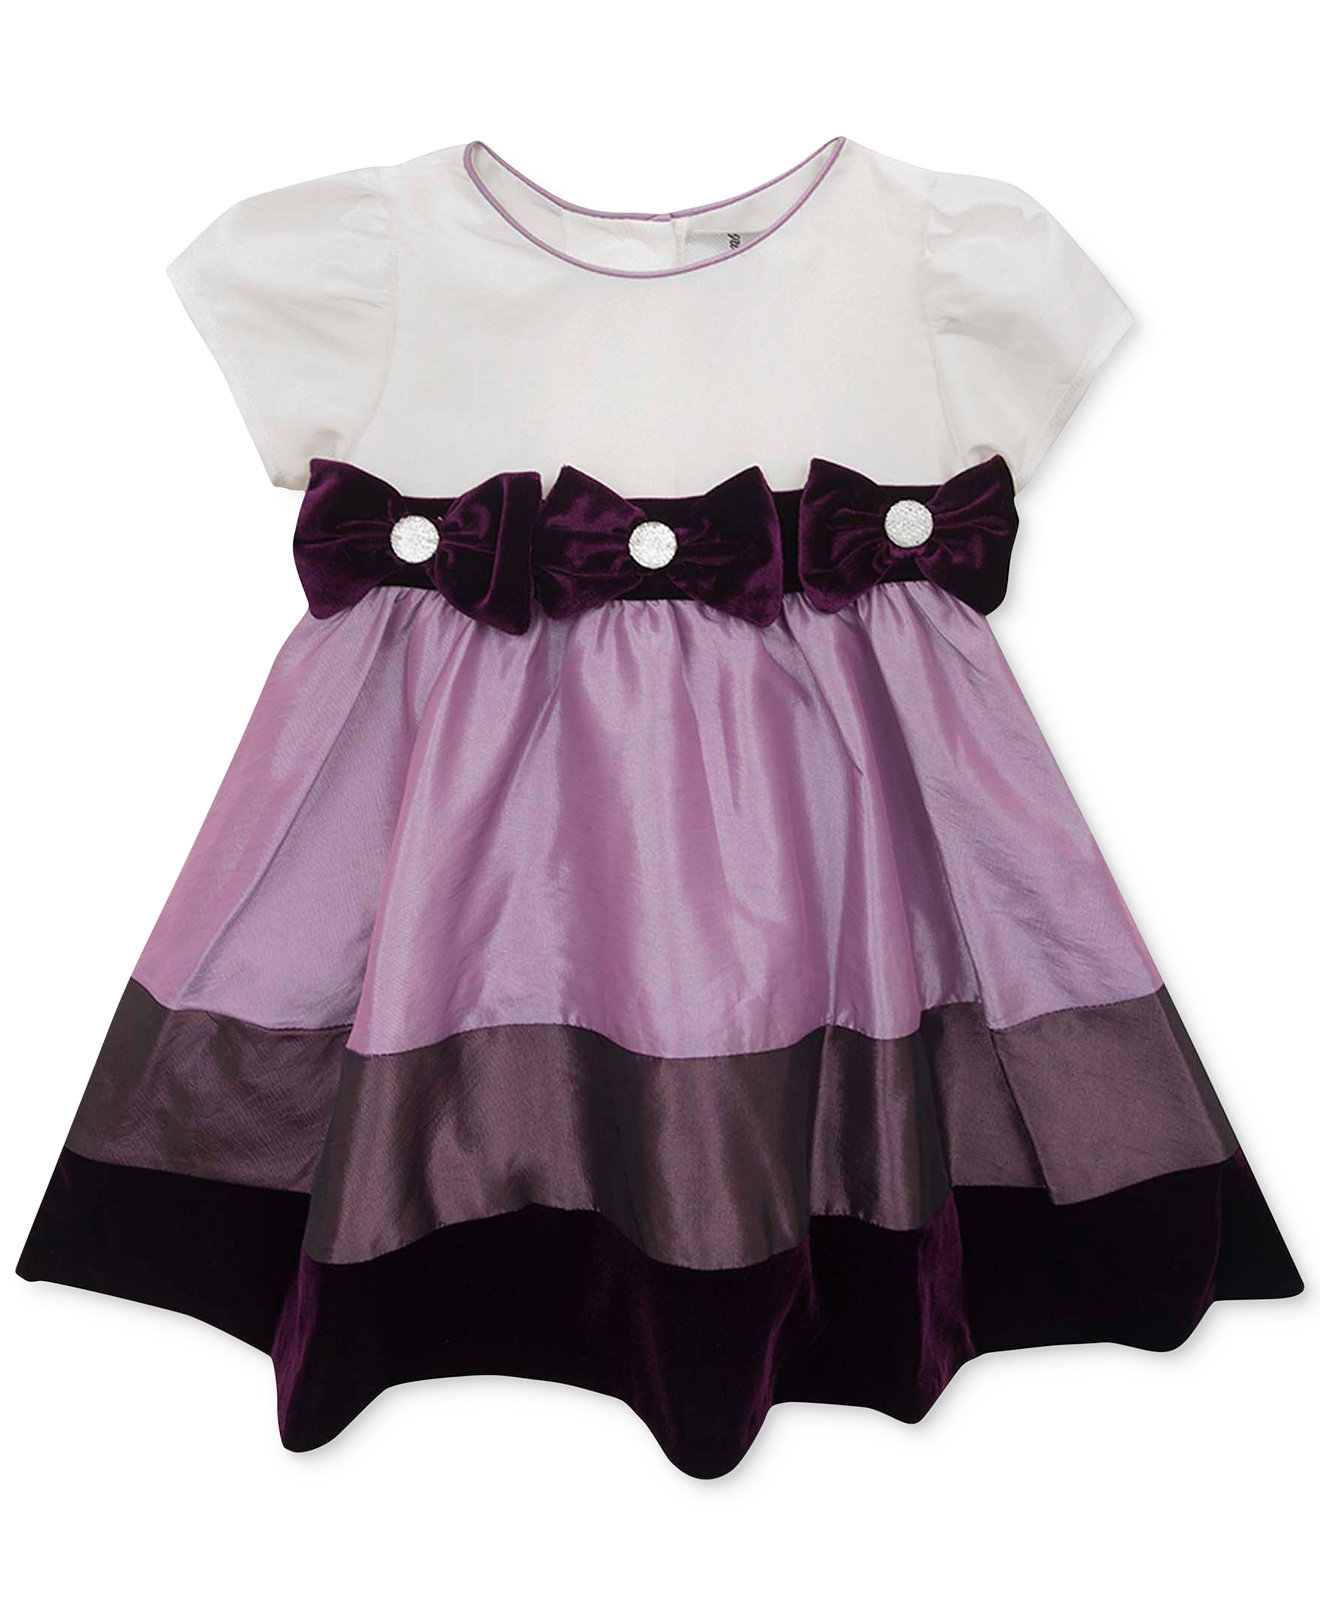 Girls Holiday Dresses Clearance